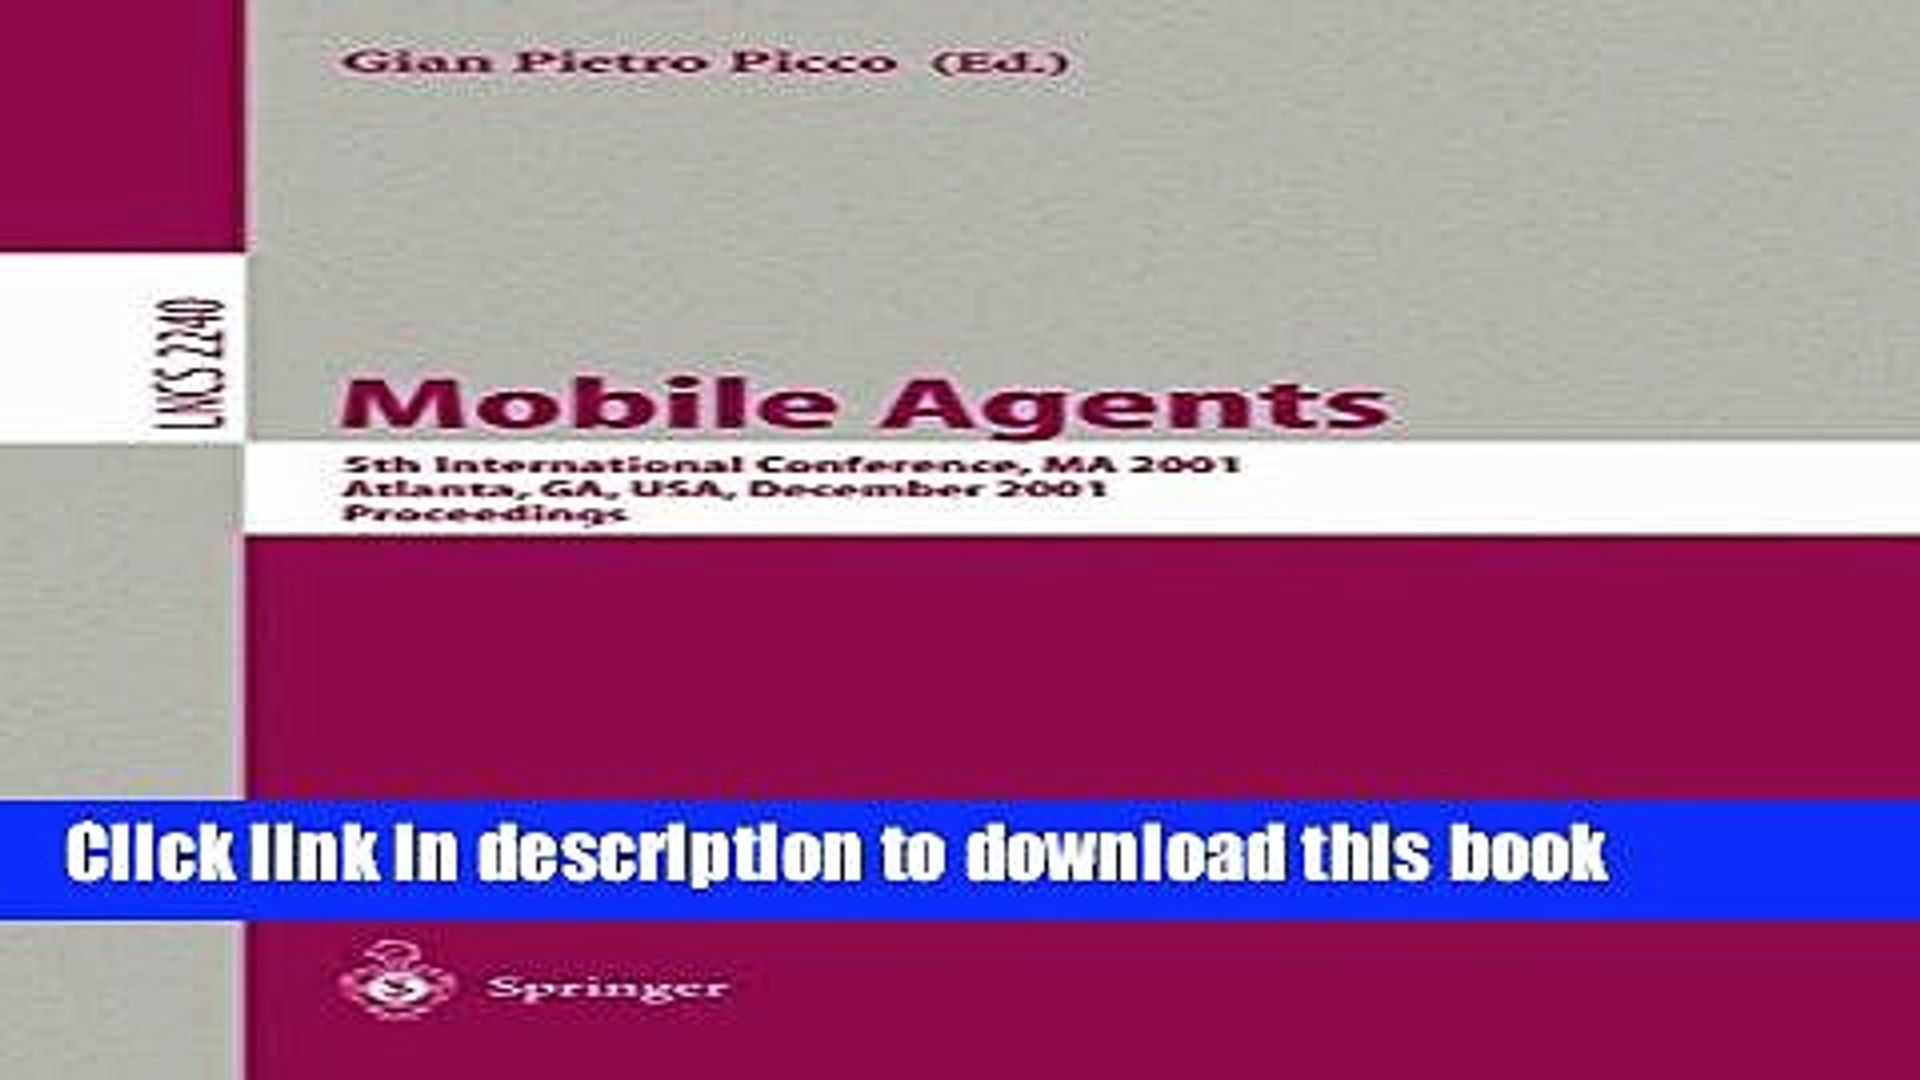 Download Mobile Agents: 5th International Conference, MA 2001 Atlanta, GA, USA, December 2-4, 2001